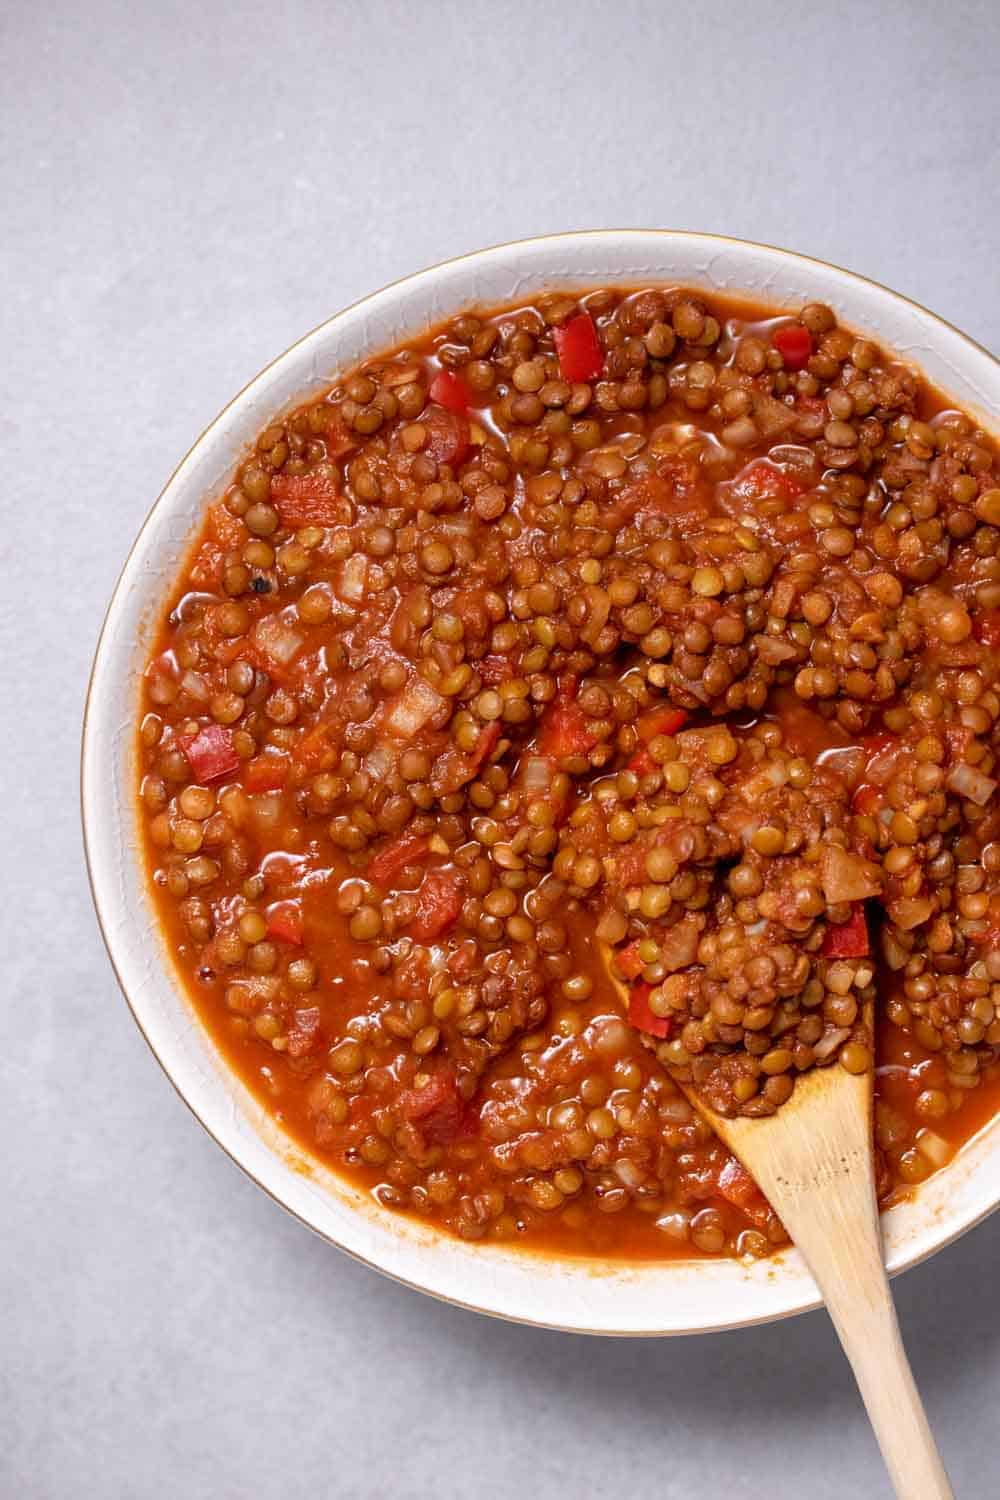 Cooked sloppy joes made with lentils in a bowl